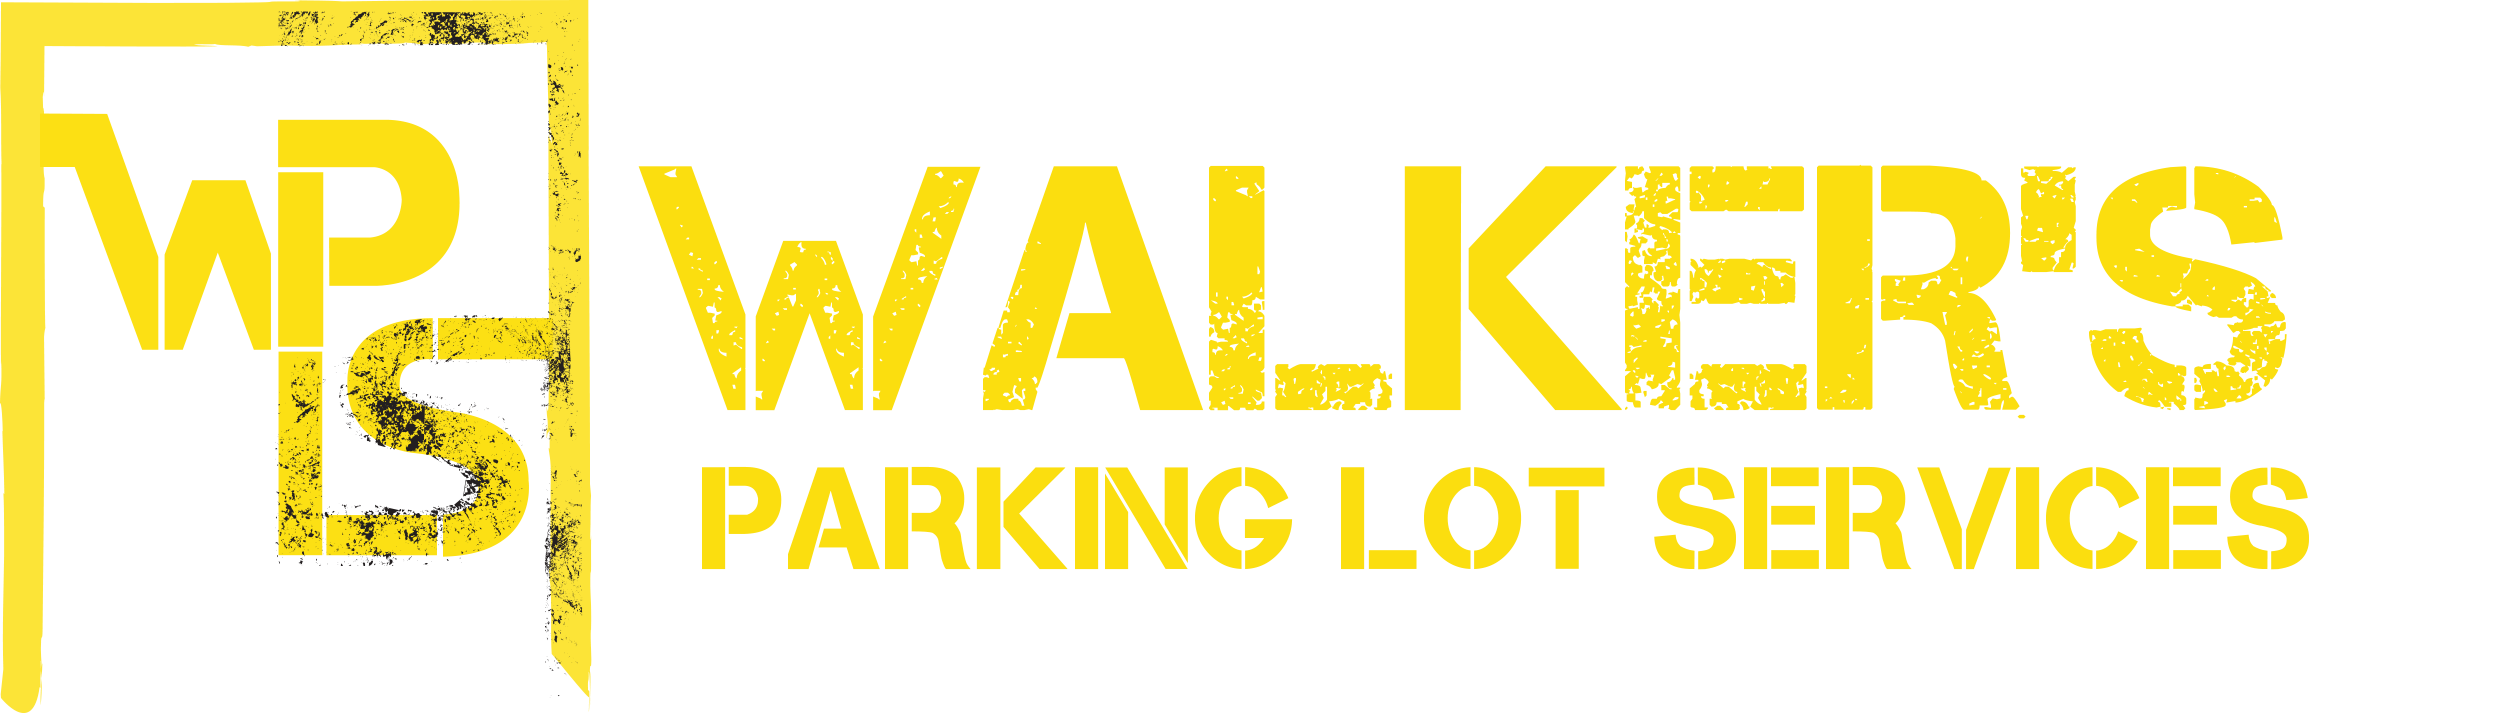 Walkers Parking Lot Services